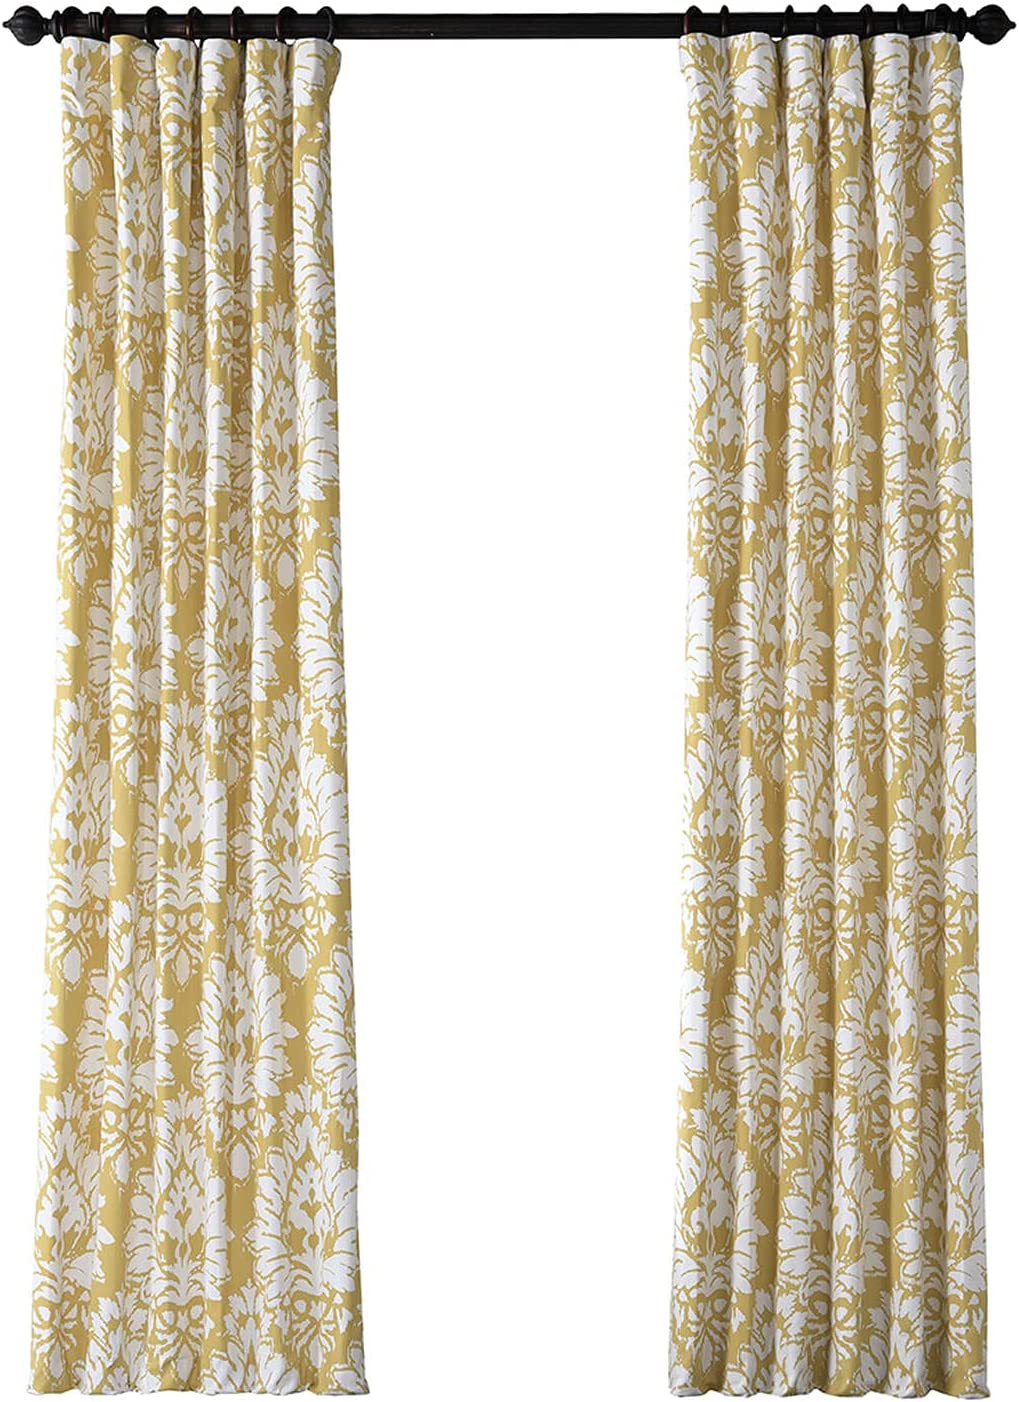 HPD Half Price Drapes PRTW-D46A-84 Twill Printed Cotton Curtain New Free Shipping Fashionable